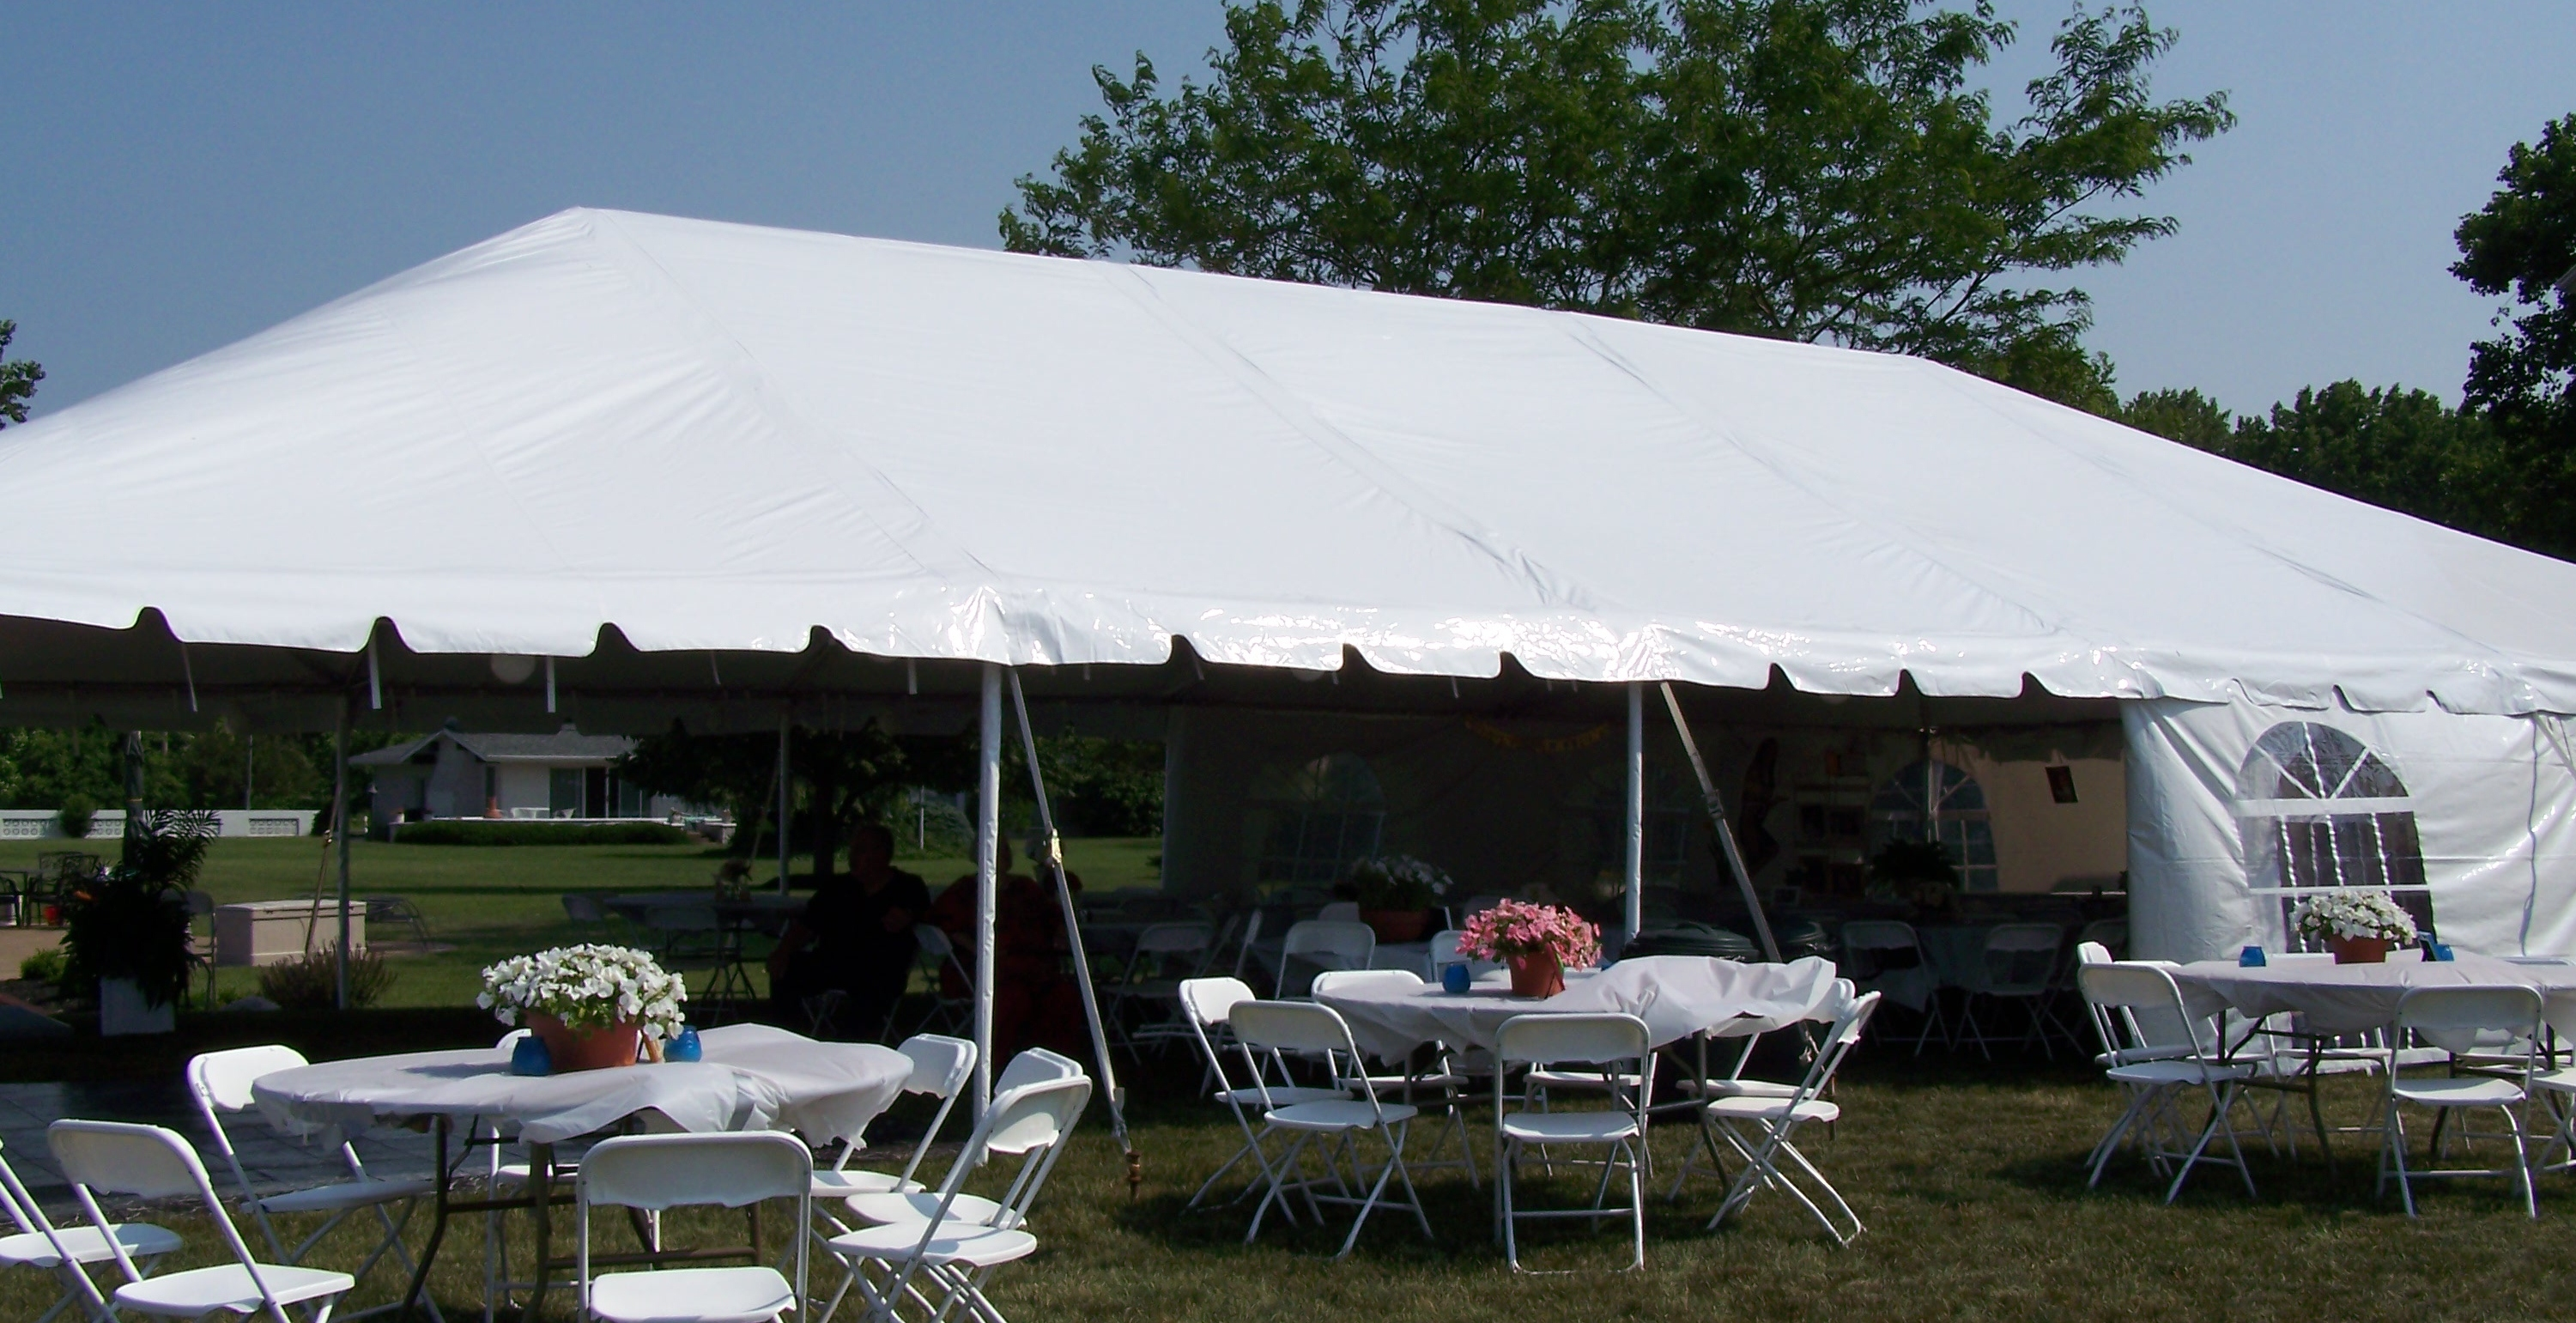 WITT Rental, Norwalk OH | Tent Table & Chairs for Weddings, and more